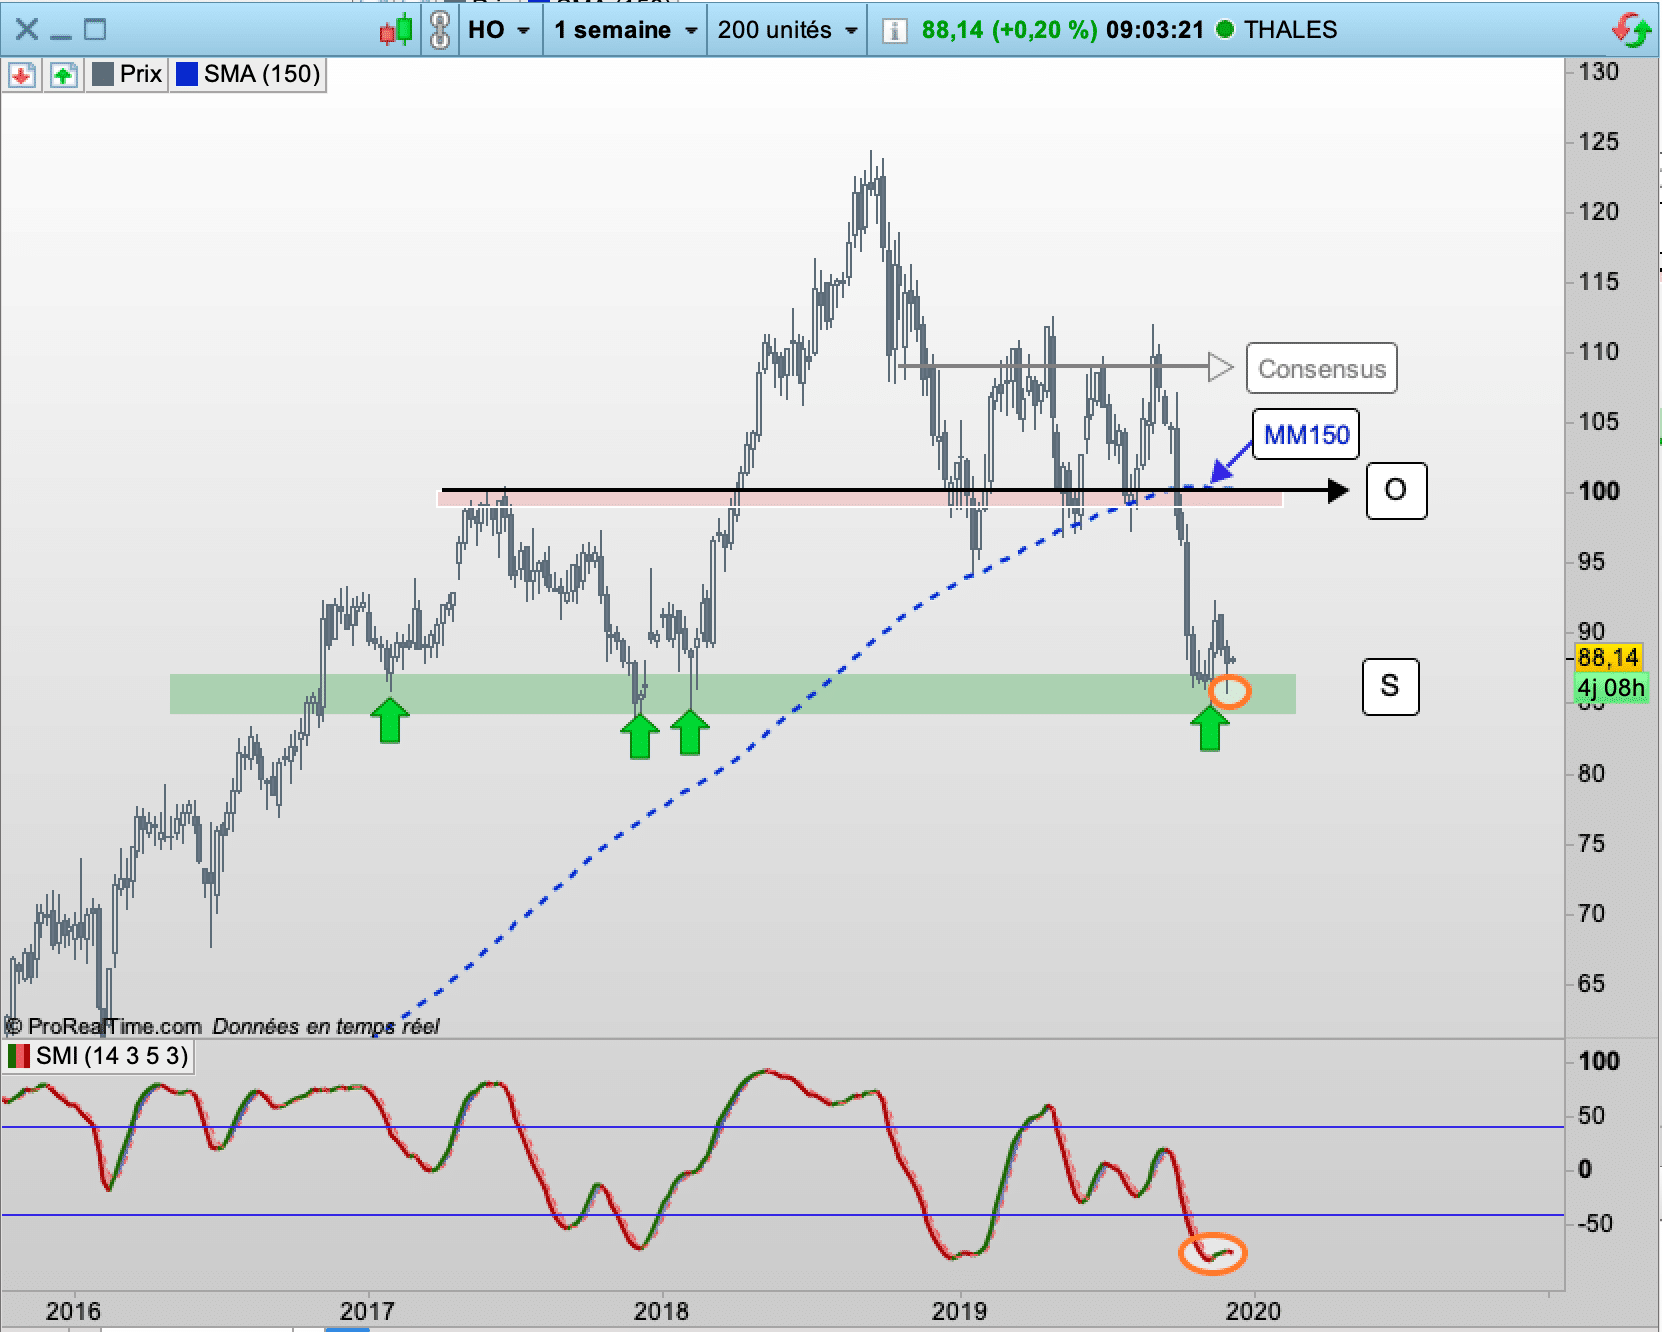 graphe - action Thales - CAC40